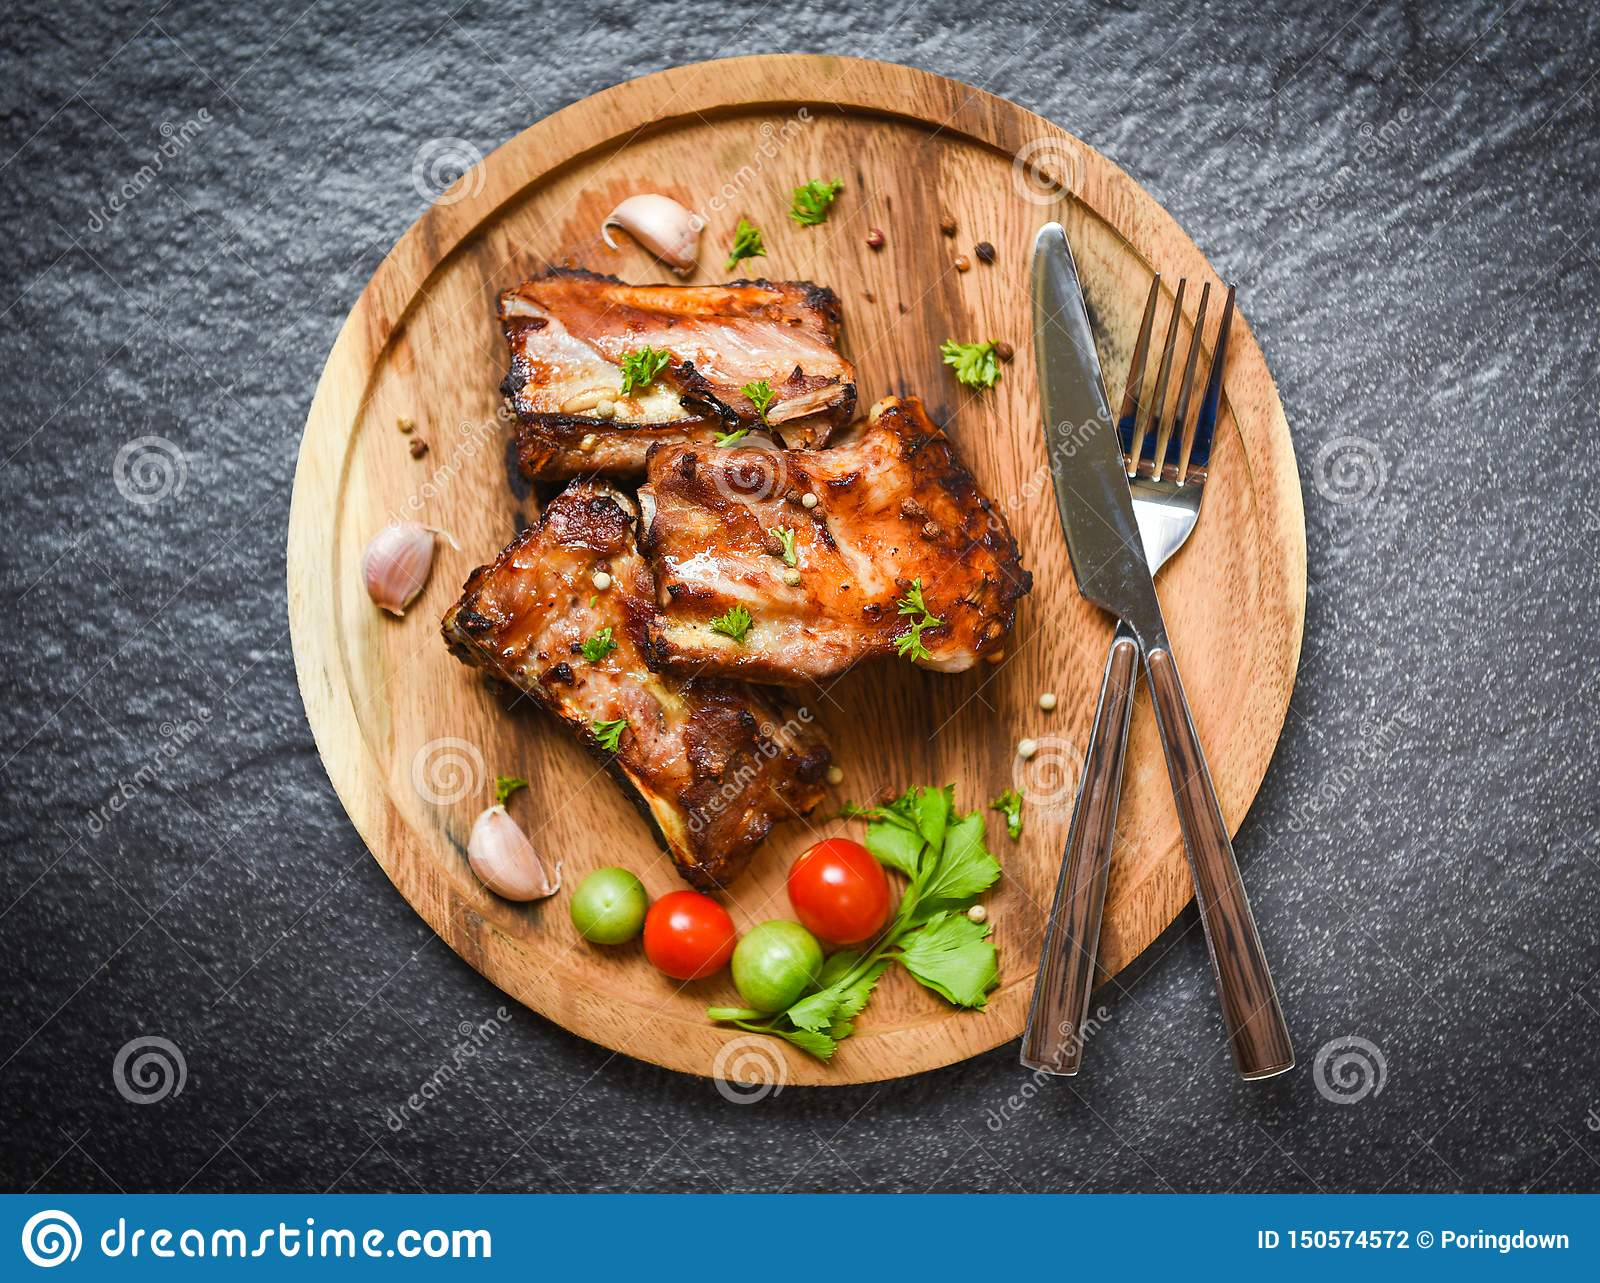 Bbq pork ribs grilled with tomatoes herbs and spices on wooden tray - Roasted barbecue pork spare rib sliced